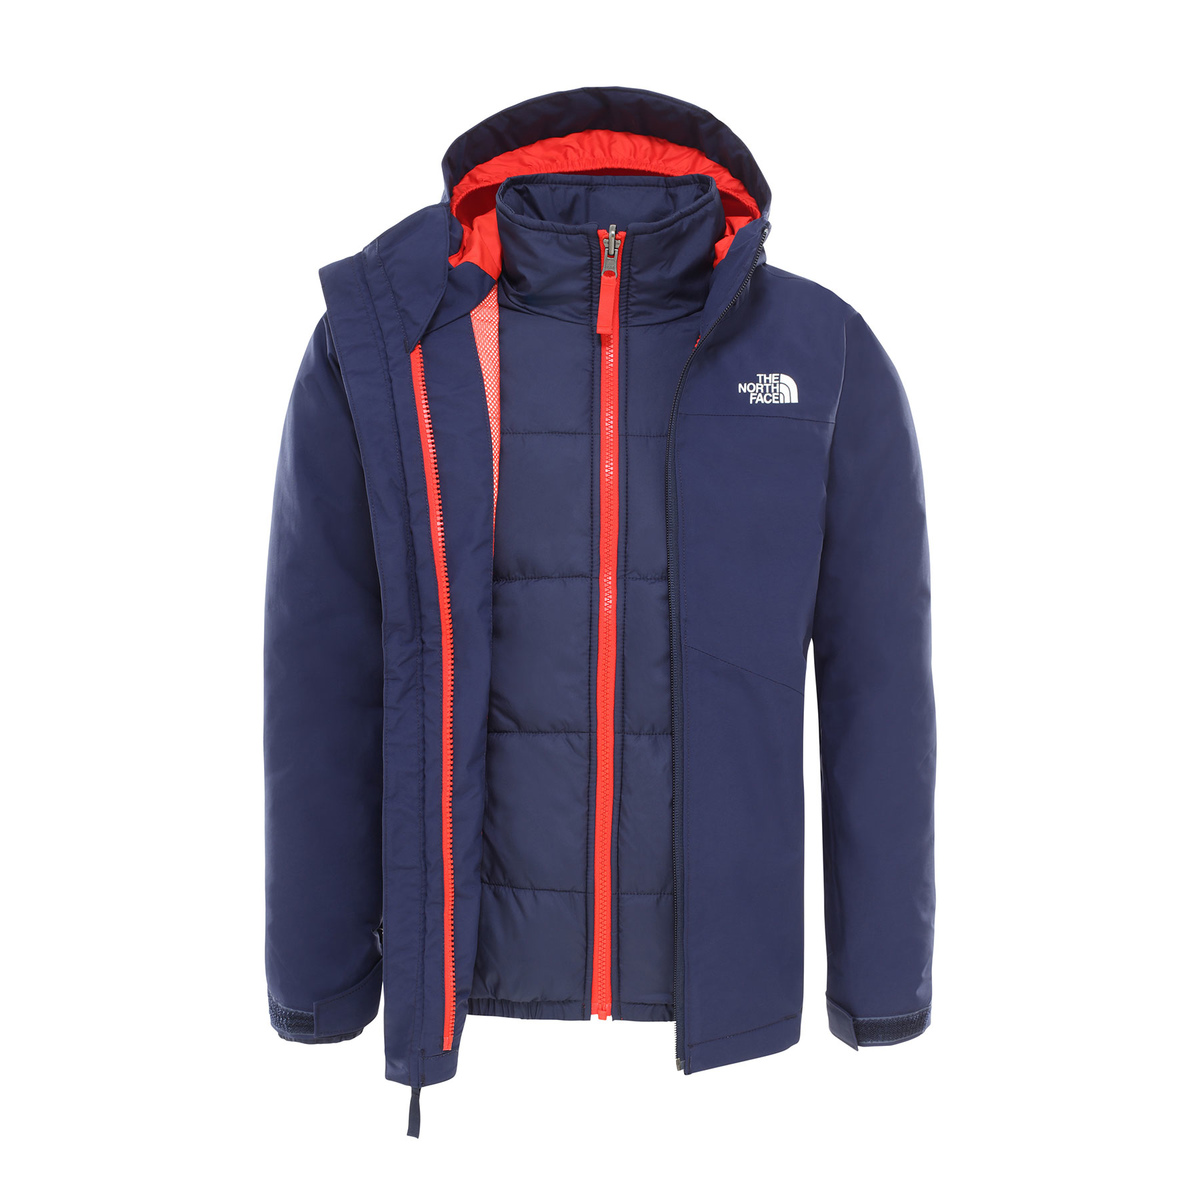 Prezzi The north face GIACCA CLEMENT TRICLIMATE BAMBINO